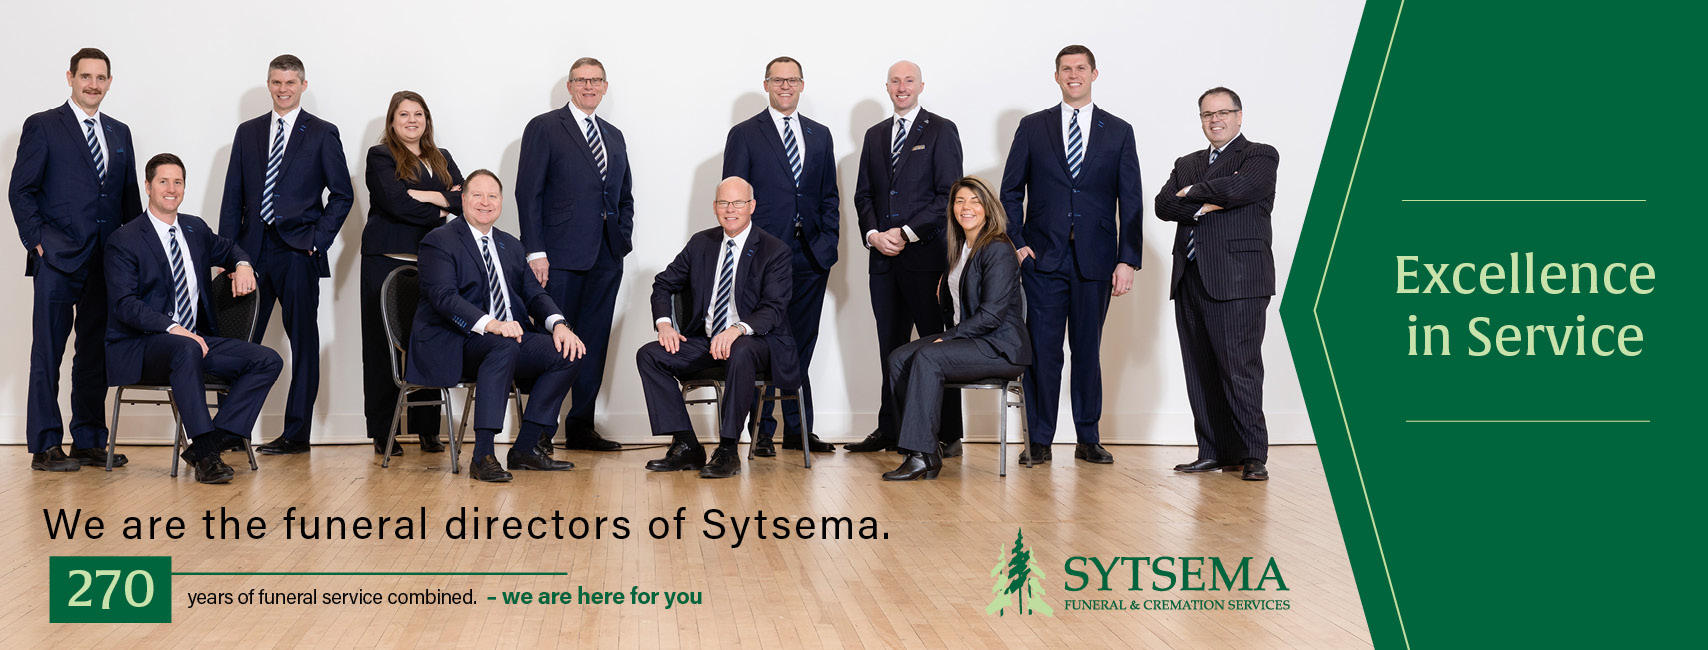 The Sytsema Chapel of Sytsema Funeral & Cremation Services